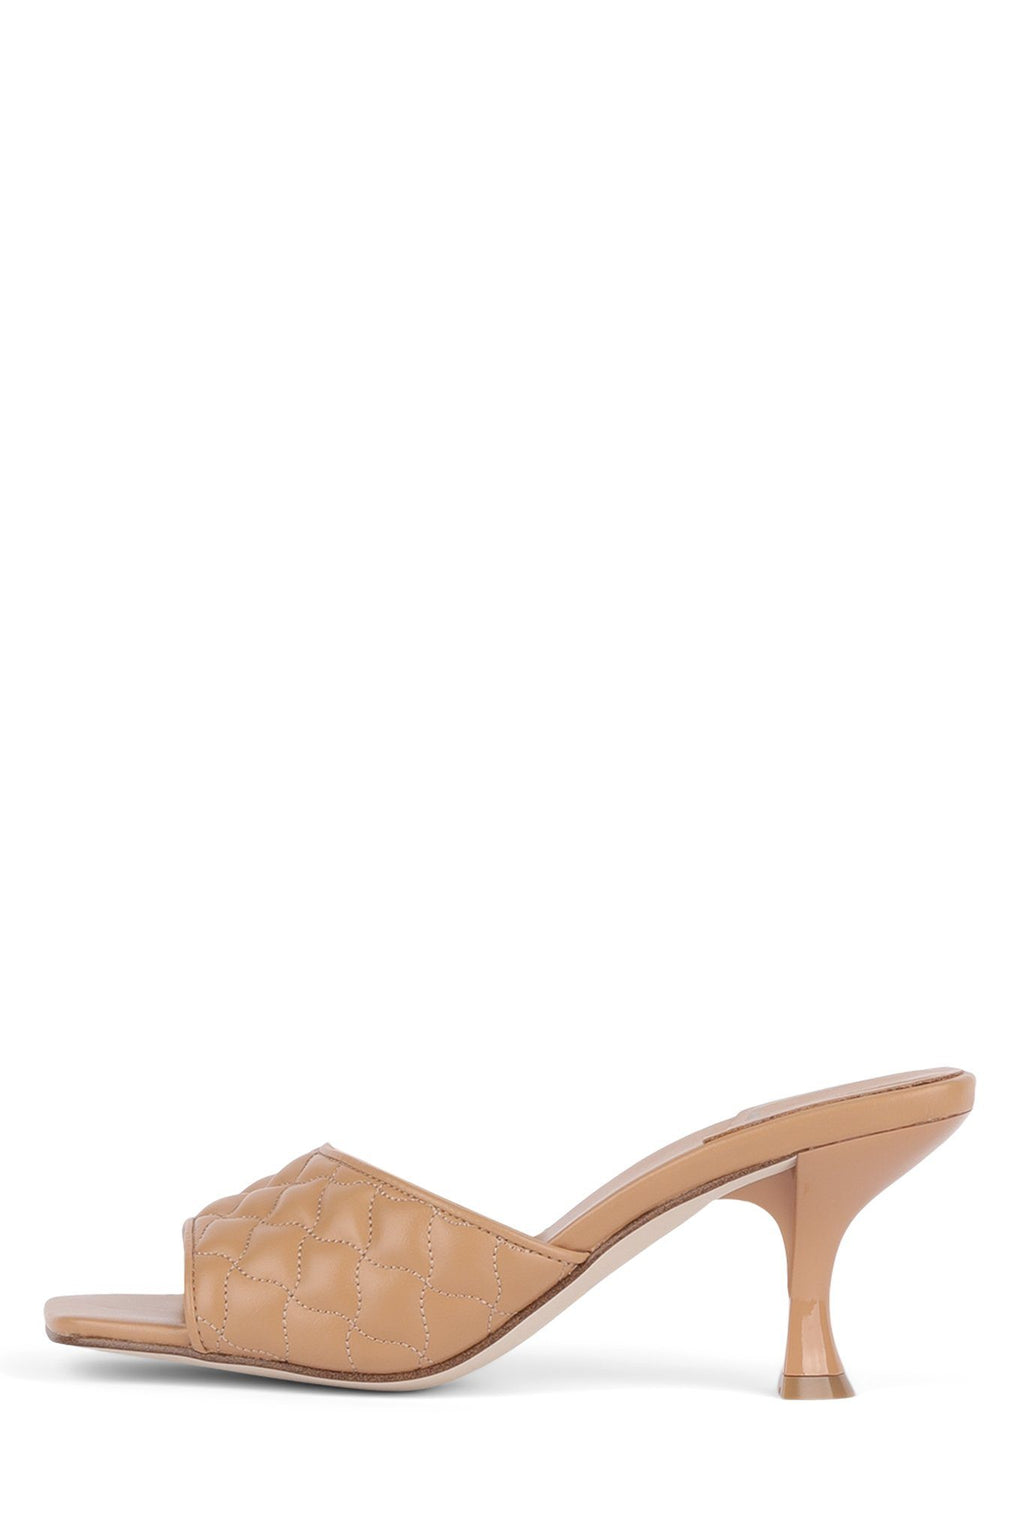 MR-BIG-Q2 Heeled Sandal Jeffrey Campbell Nude 6